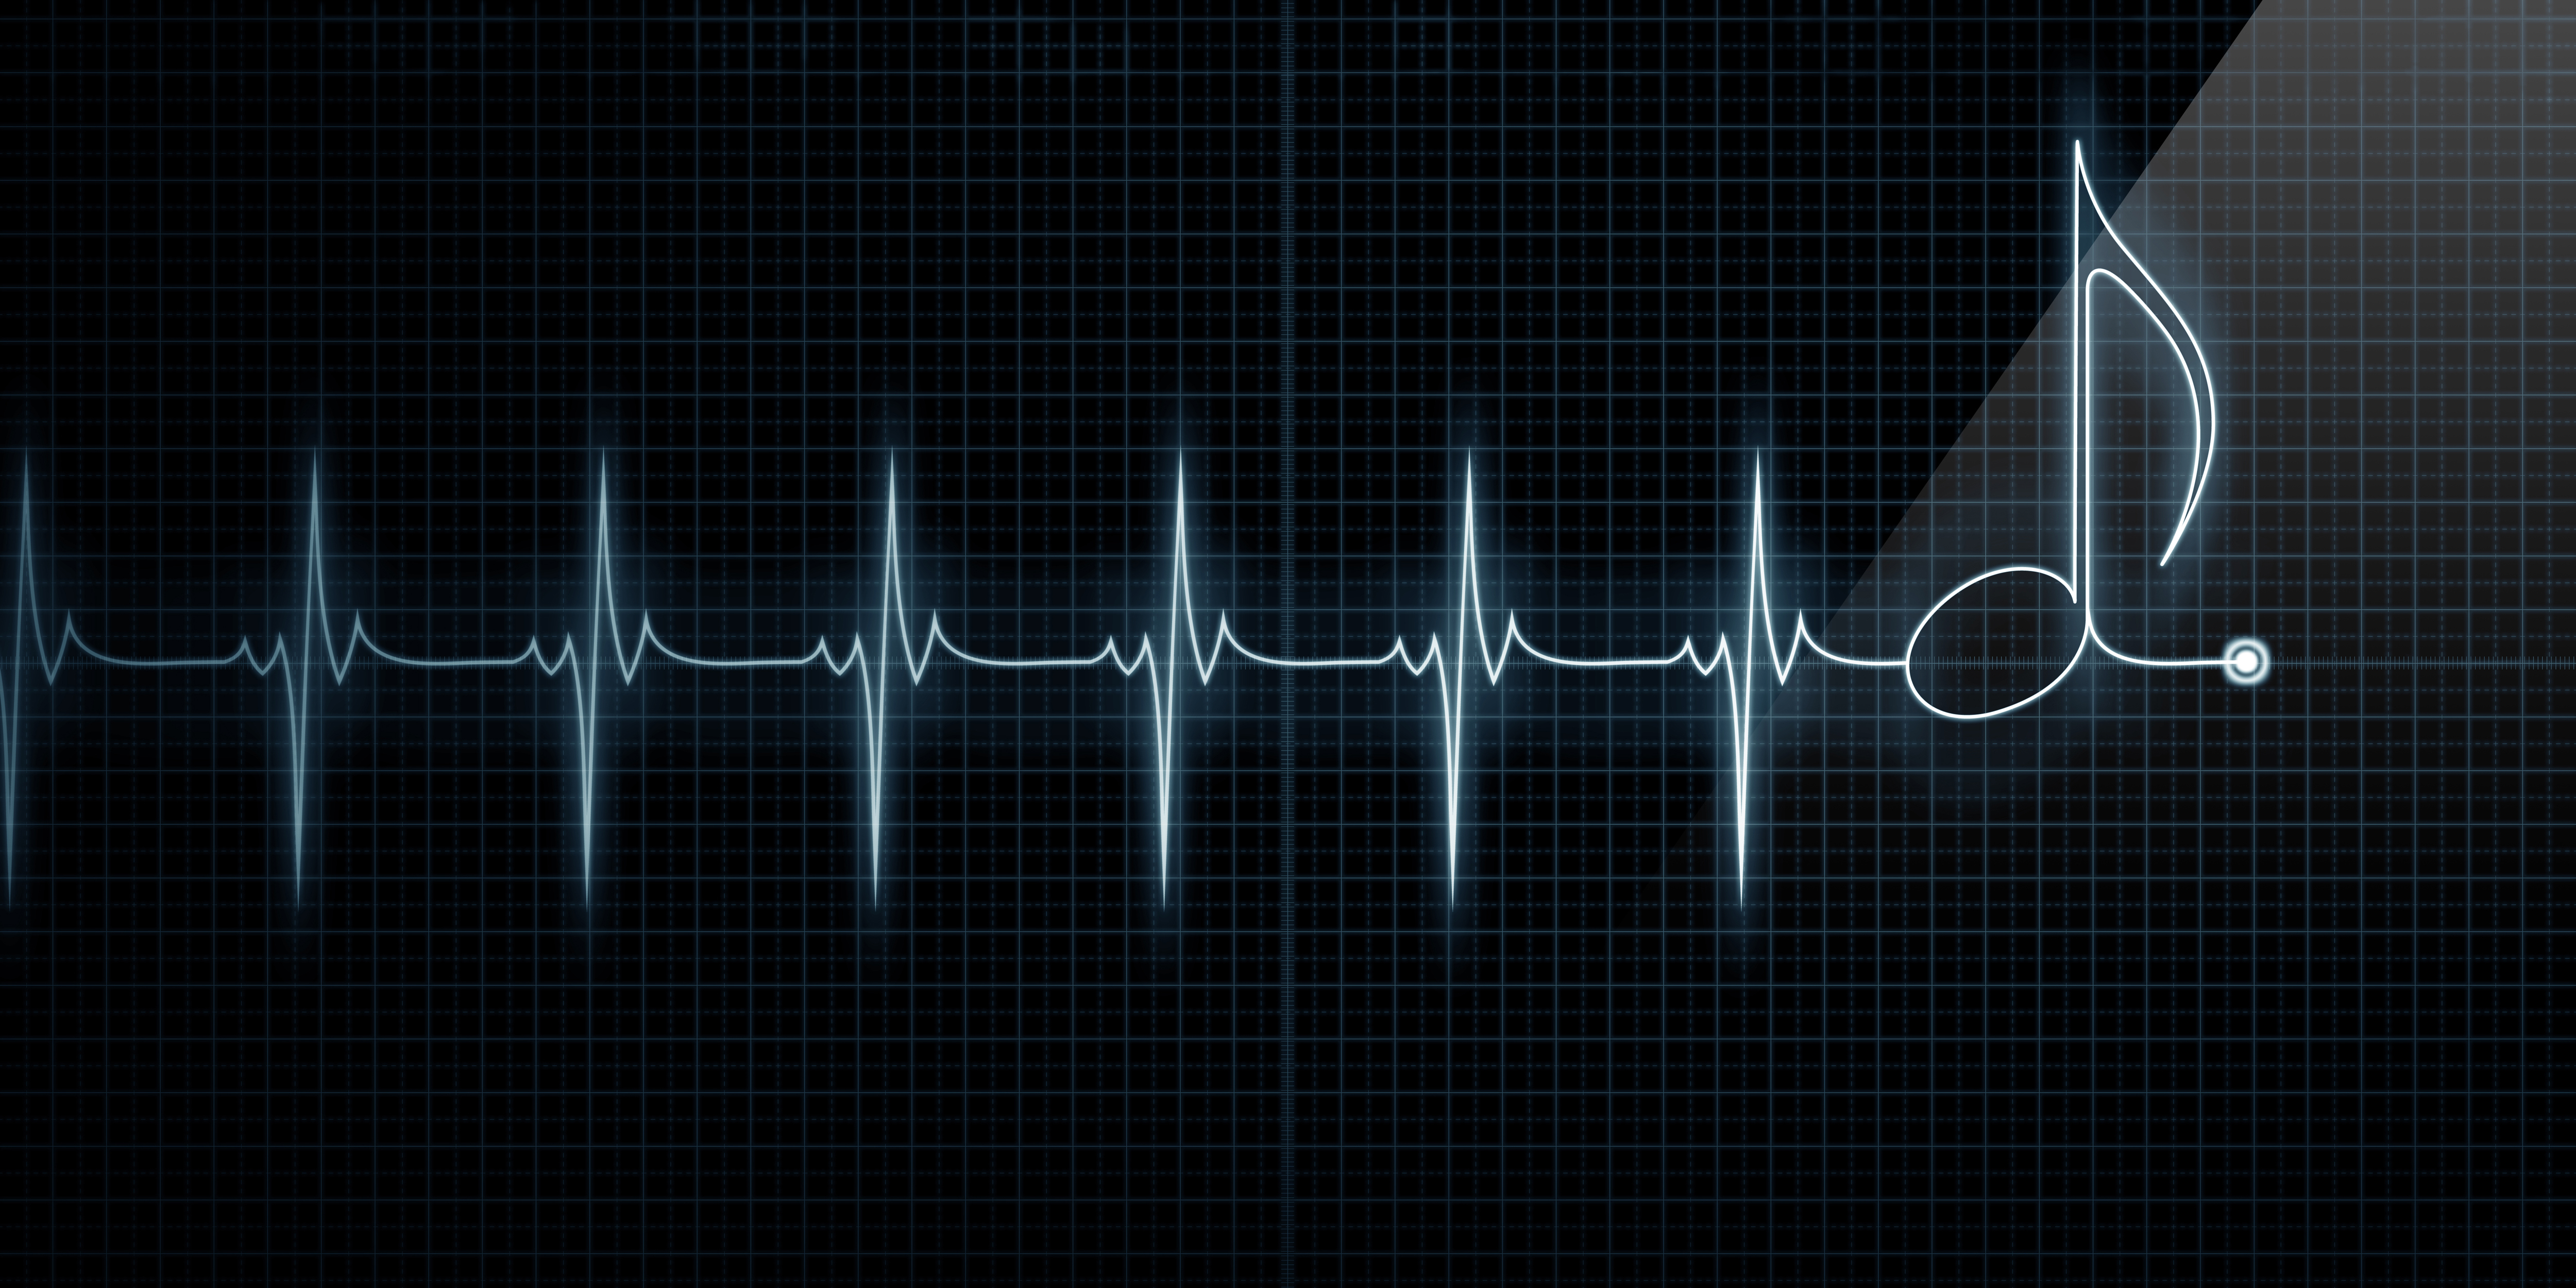 Medical doctors heard music when checking a person's pulse. Here is why. 3nSFnhmyBsjwYCS4X7Sz9A